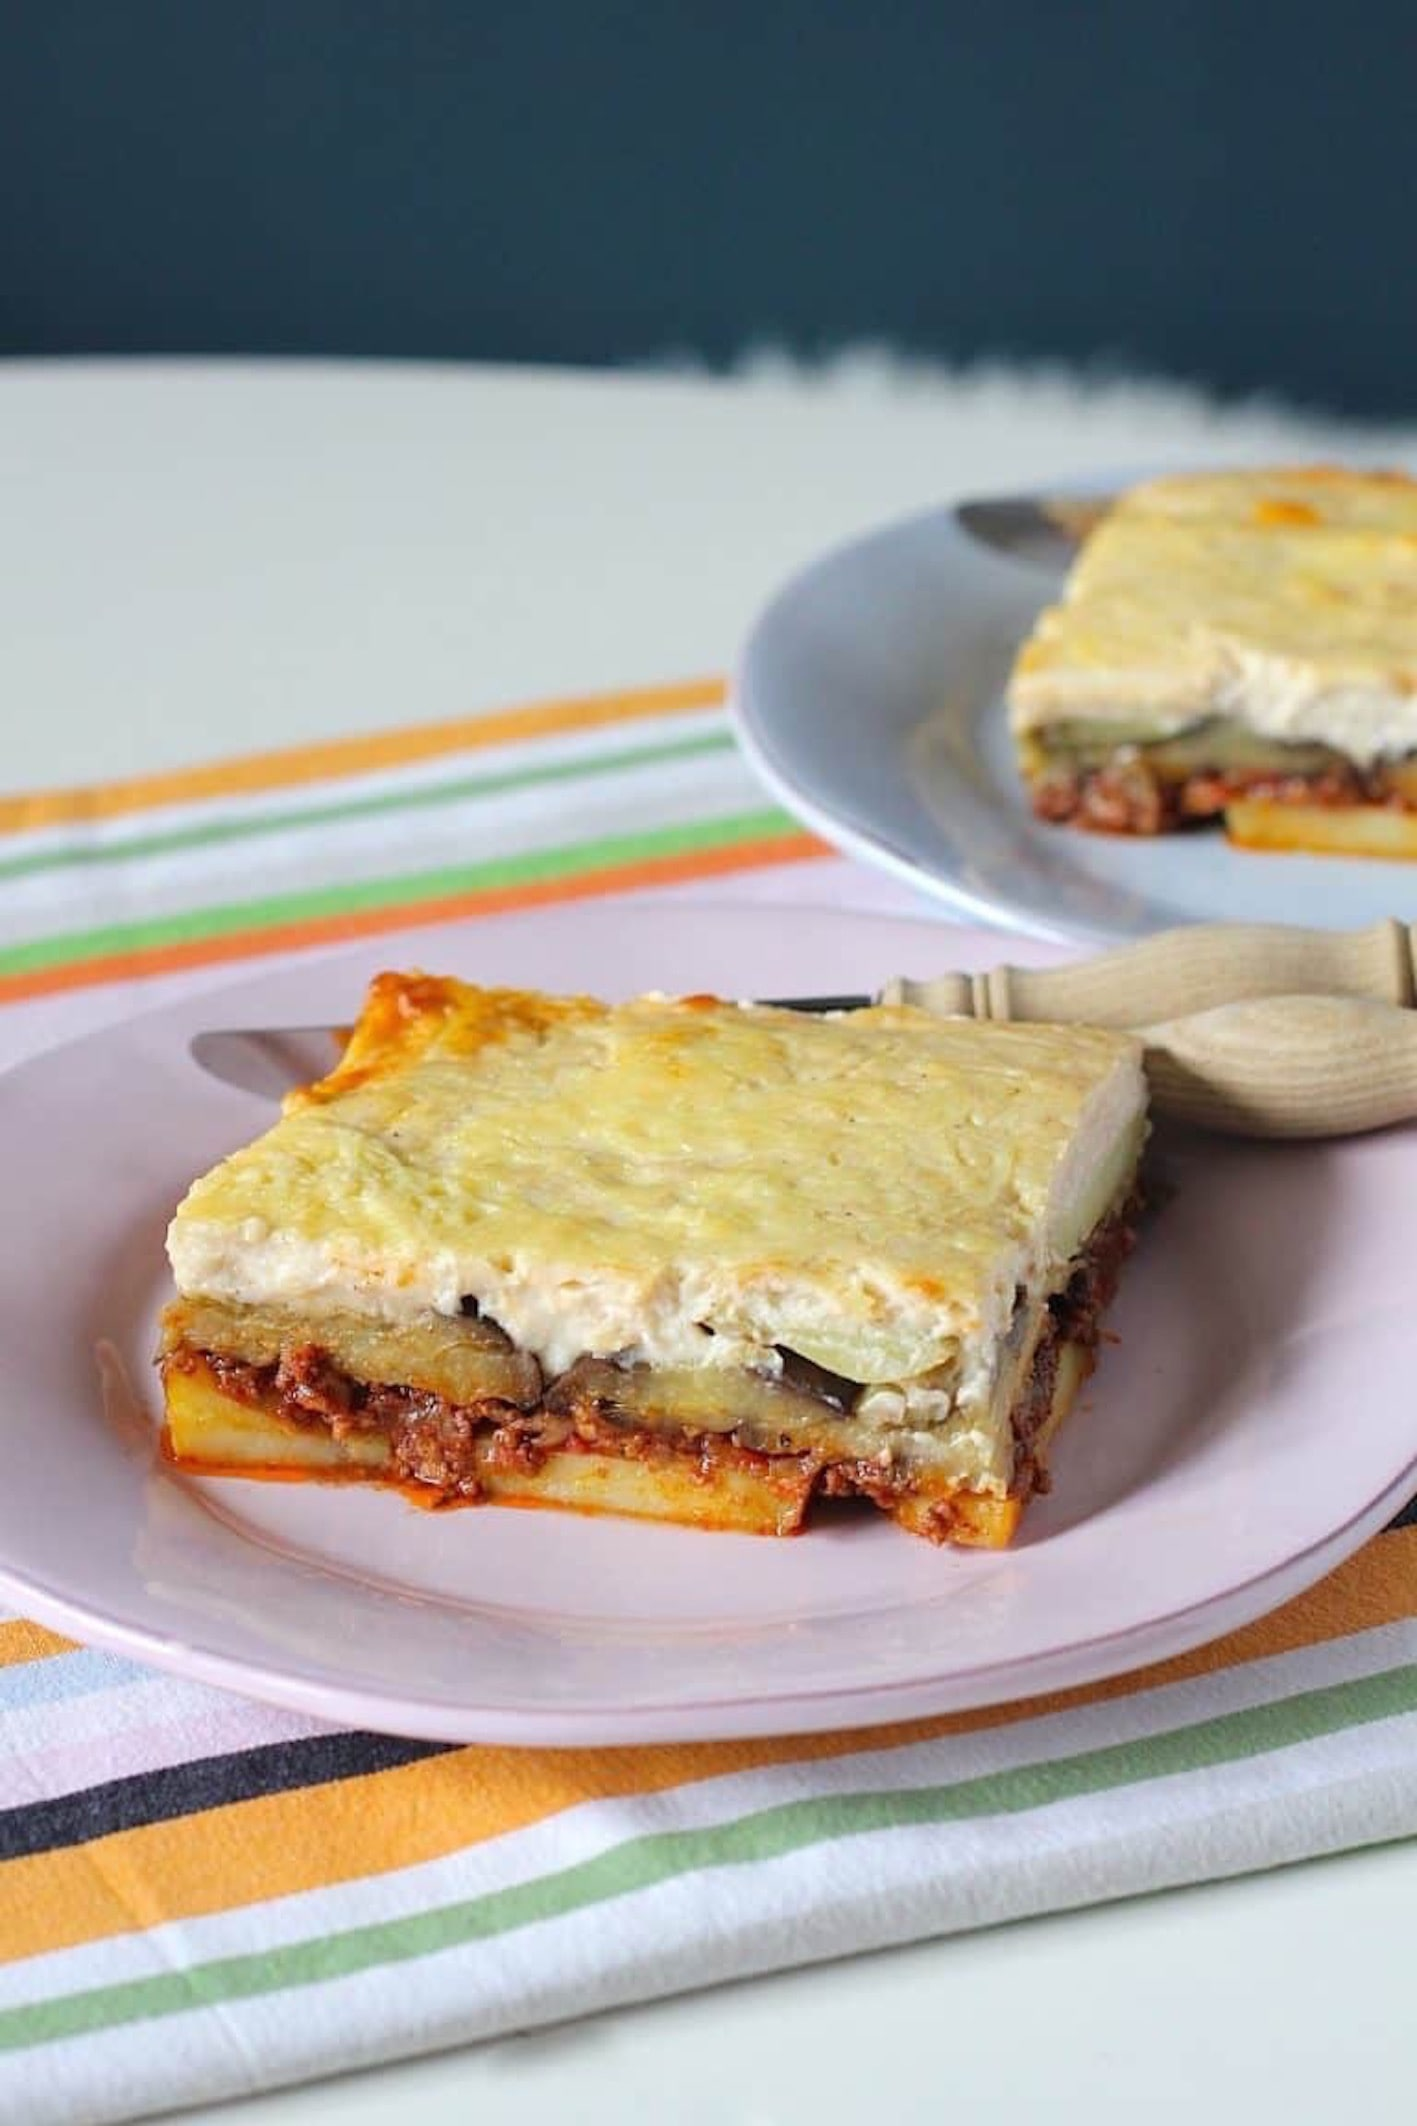 Griekse moussaka | ENJOY! The Good Life